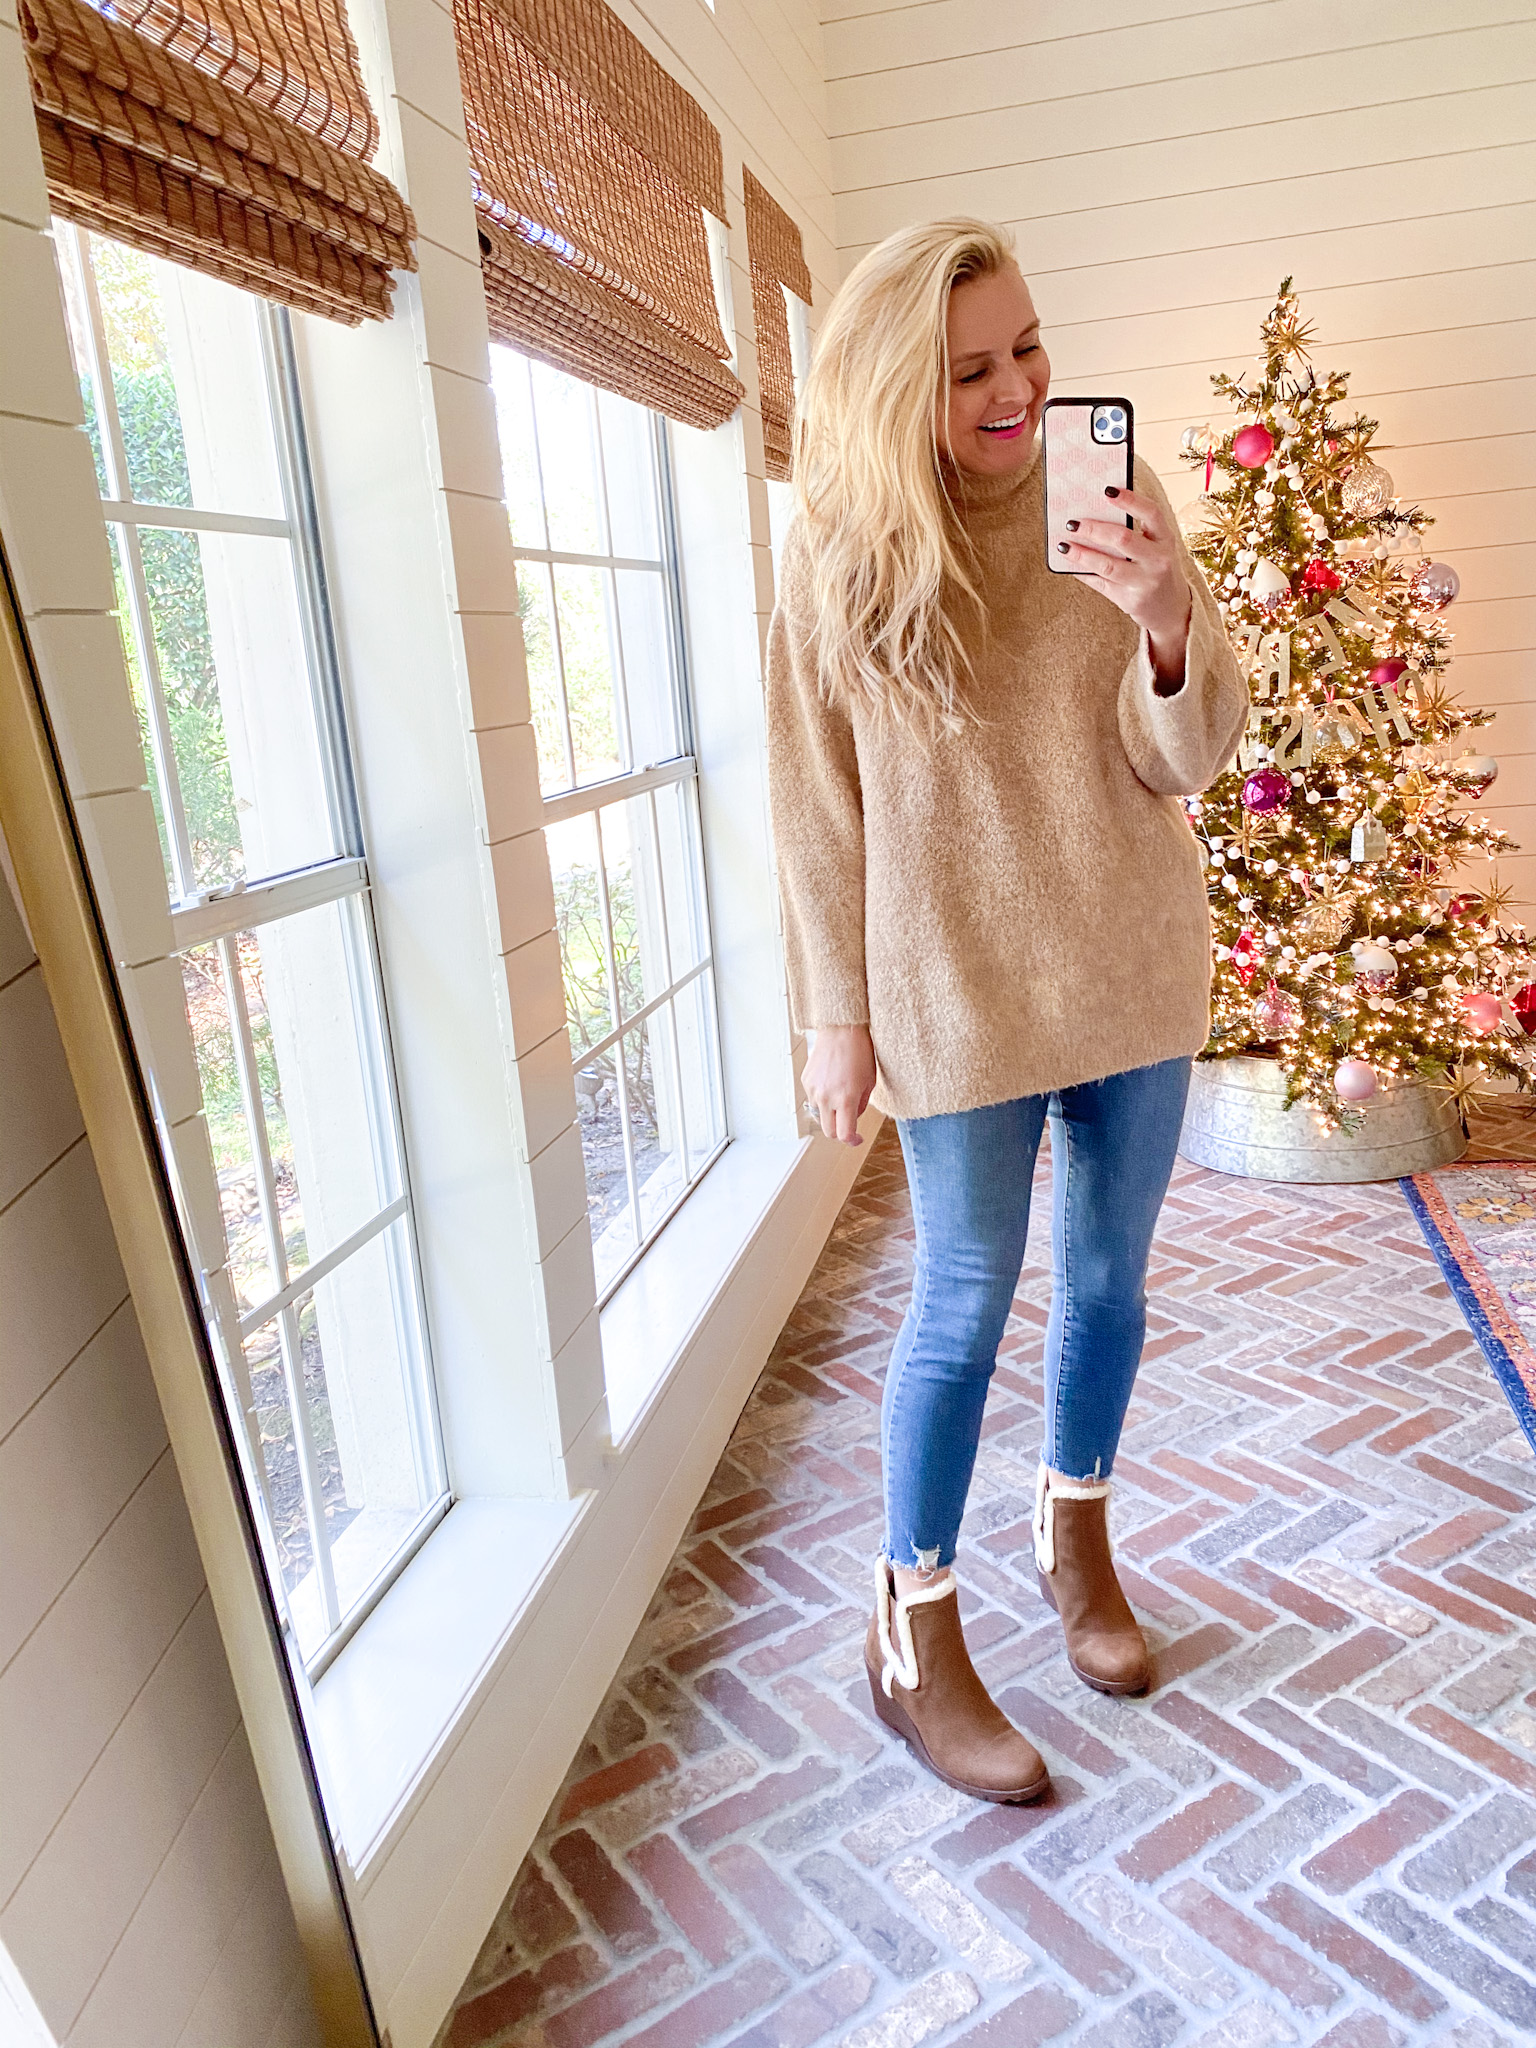 December Outfits by popular Houston fashion blog, Fancy Ashley: image of a woman standing in front of a Christmas tree decorated with pink, white and silver ornaments and wearing a tan turtleneck sweater, jeans, and fur lined brown suede boots.